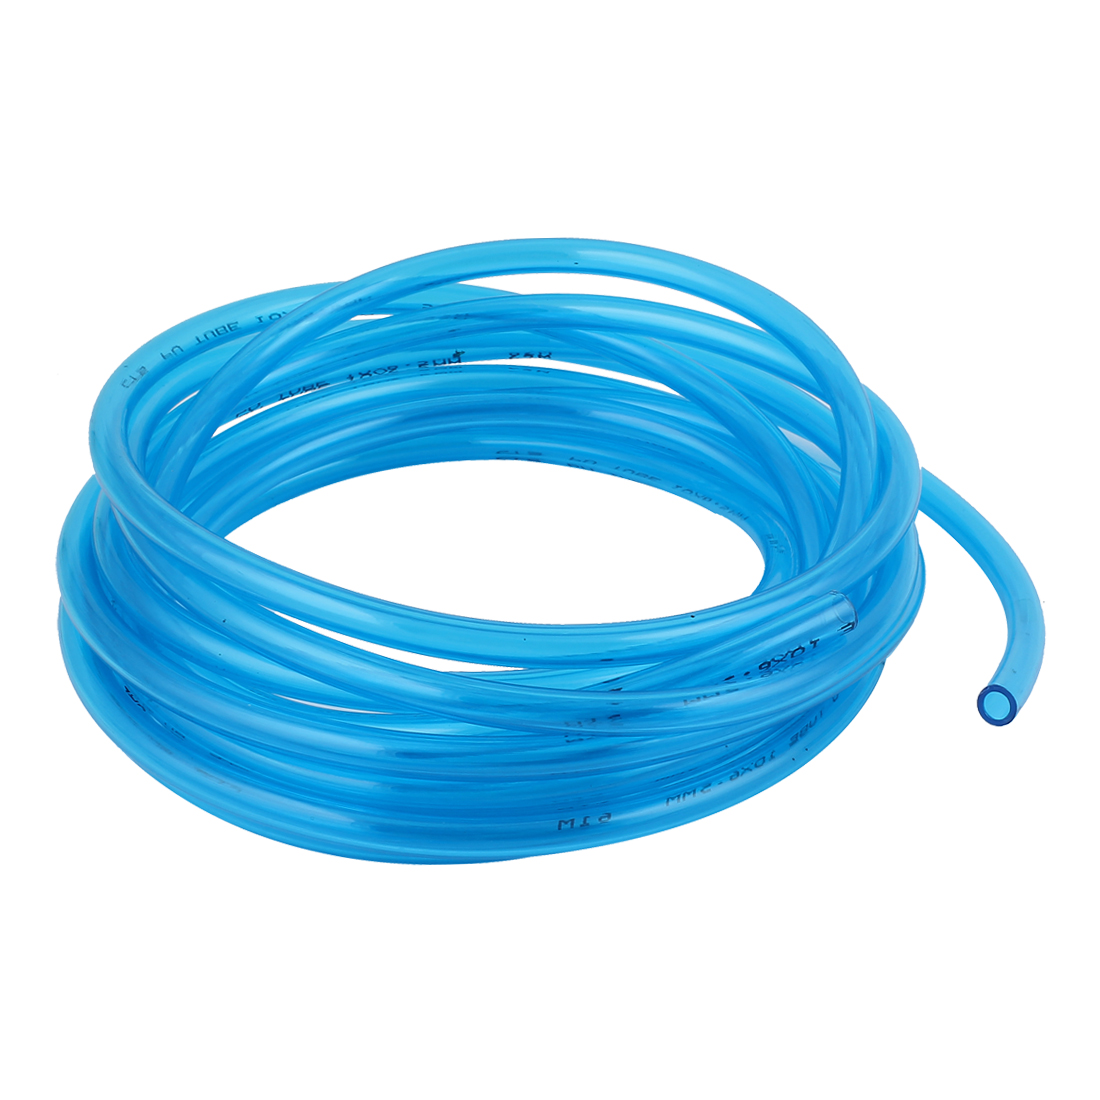 PU Polyurethane Tubing 10mm x 6.5mm Dia 6M 20Ft Air Tube for Push To Connect Fitting